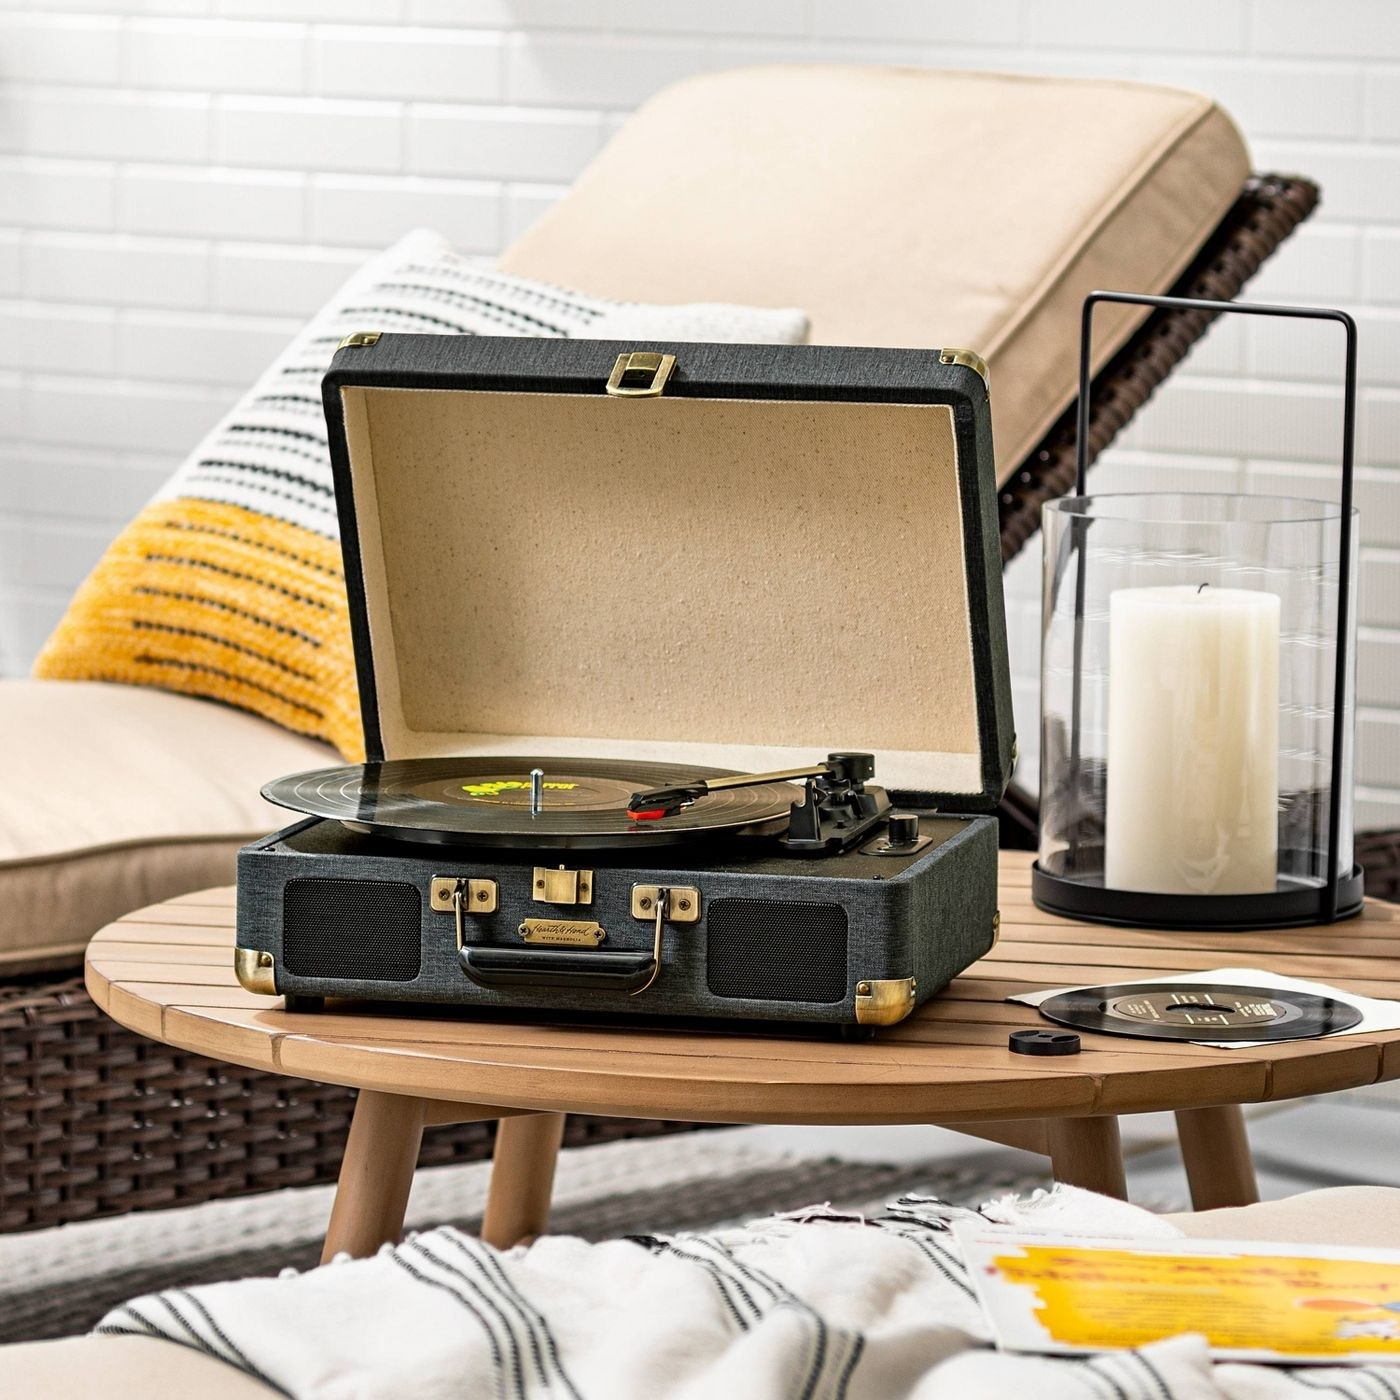 The Bluetooth compatible suitcase record player